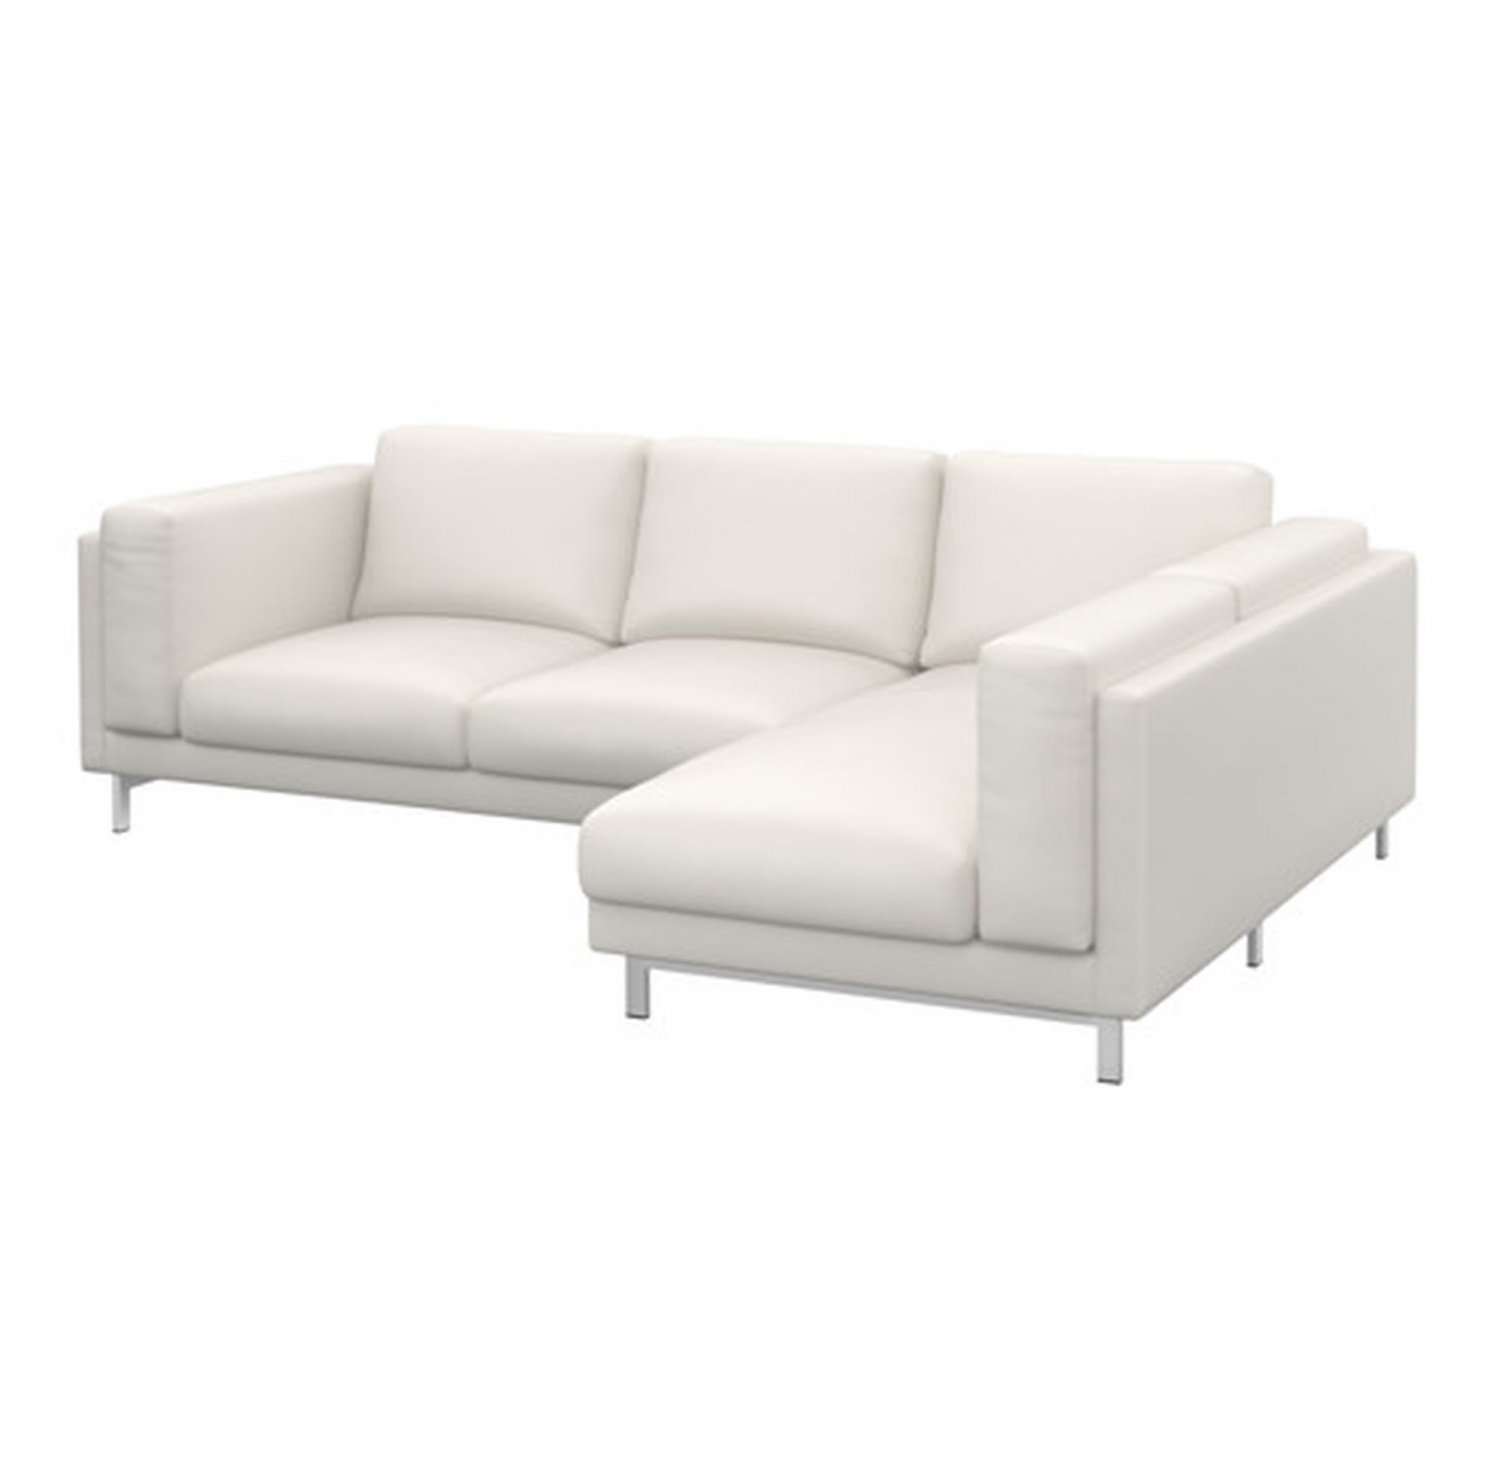 Ikea nockeby slipcover loveseat w chaise right cover risane white linen White loveseat slipcovers